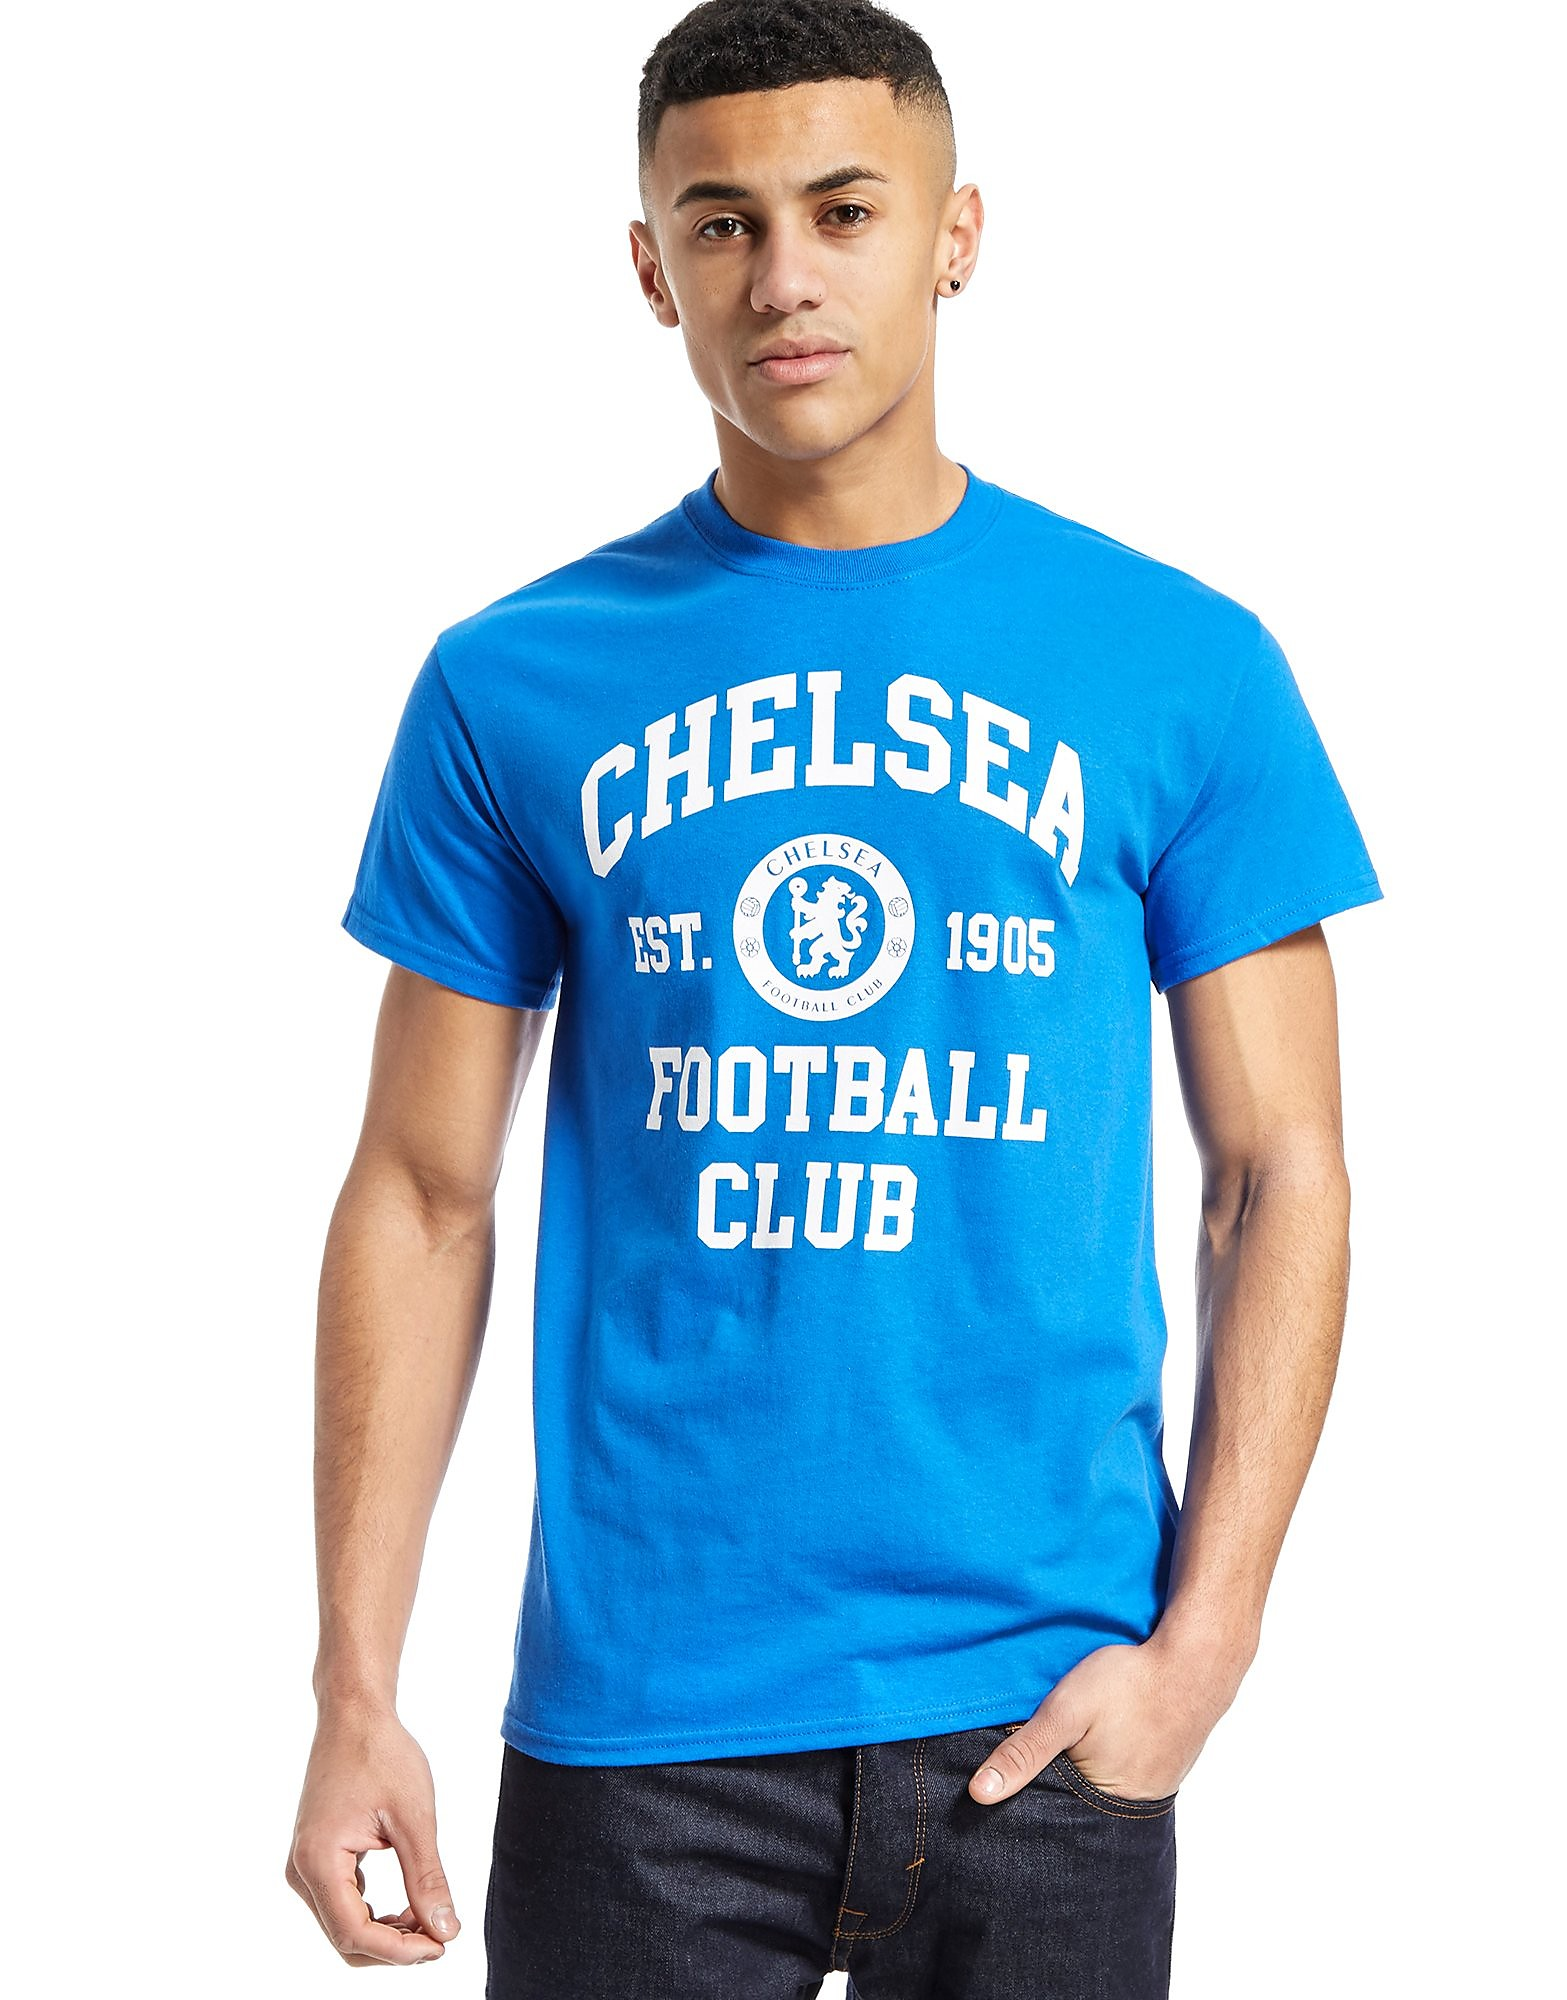 Official Team Maglietta universitaria Chelsea F.C